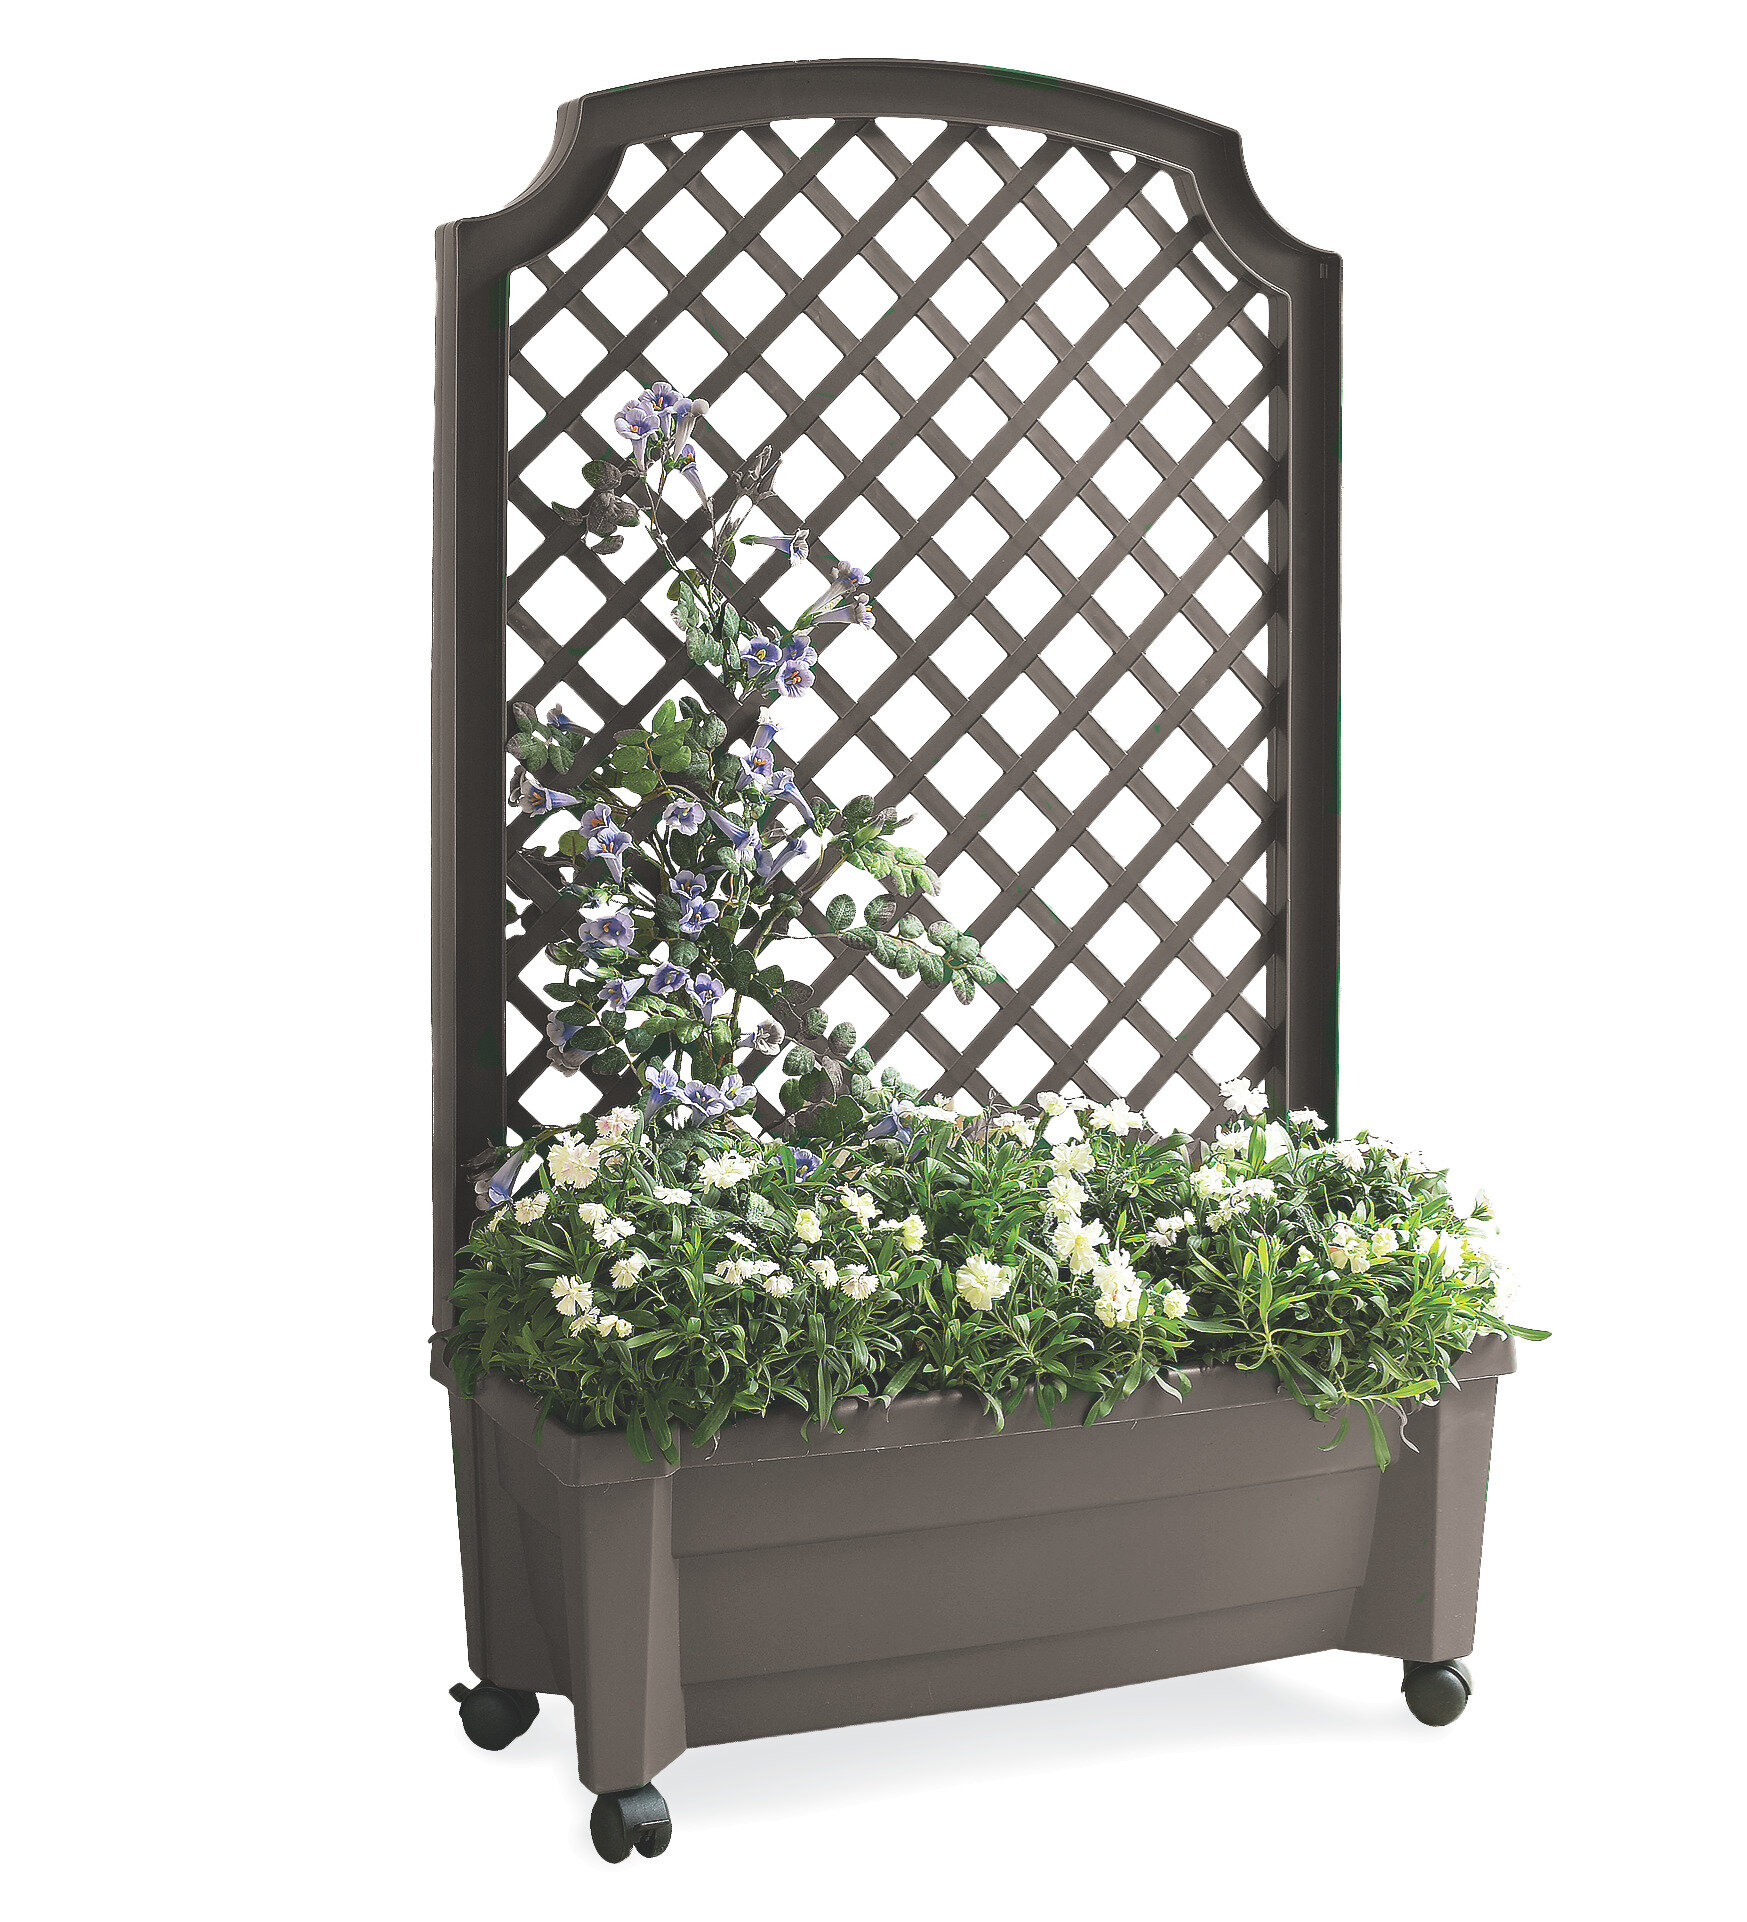 Plow Hearth All In One Self Watering Planter Box With Trellis